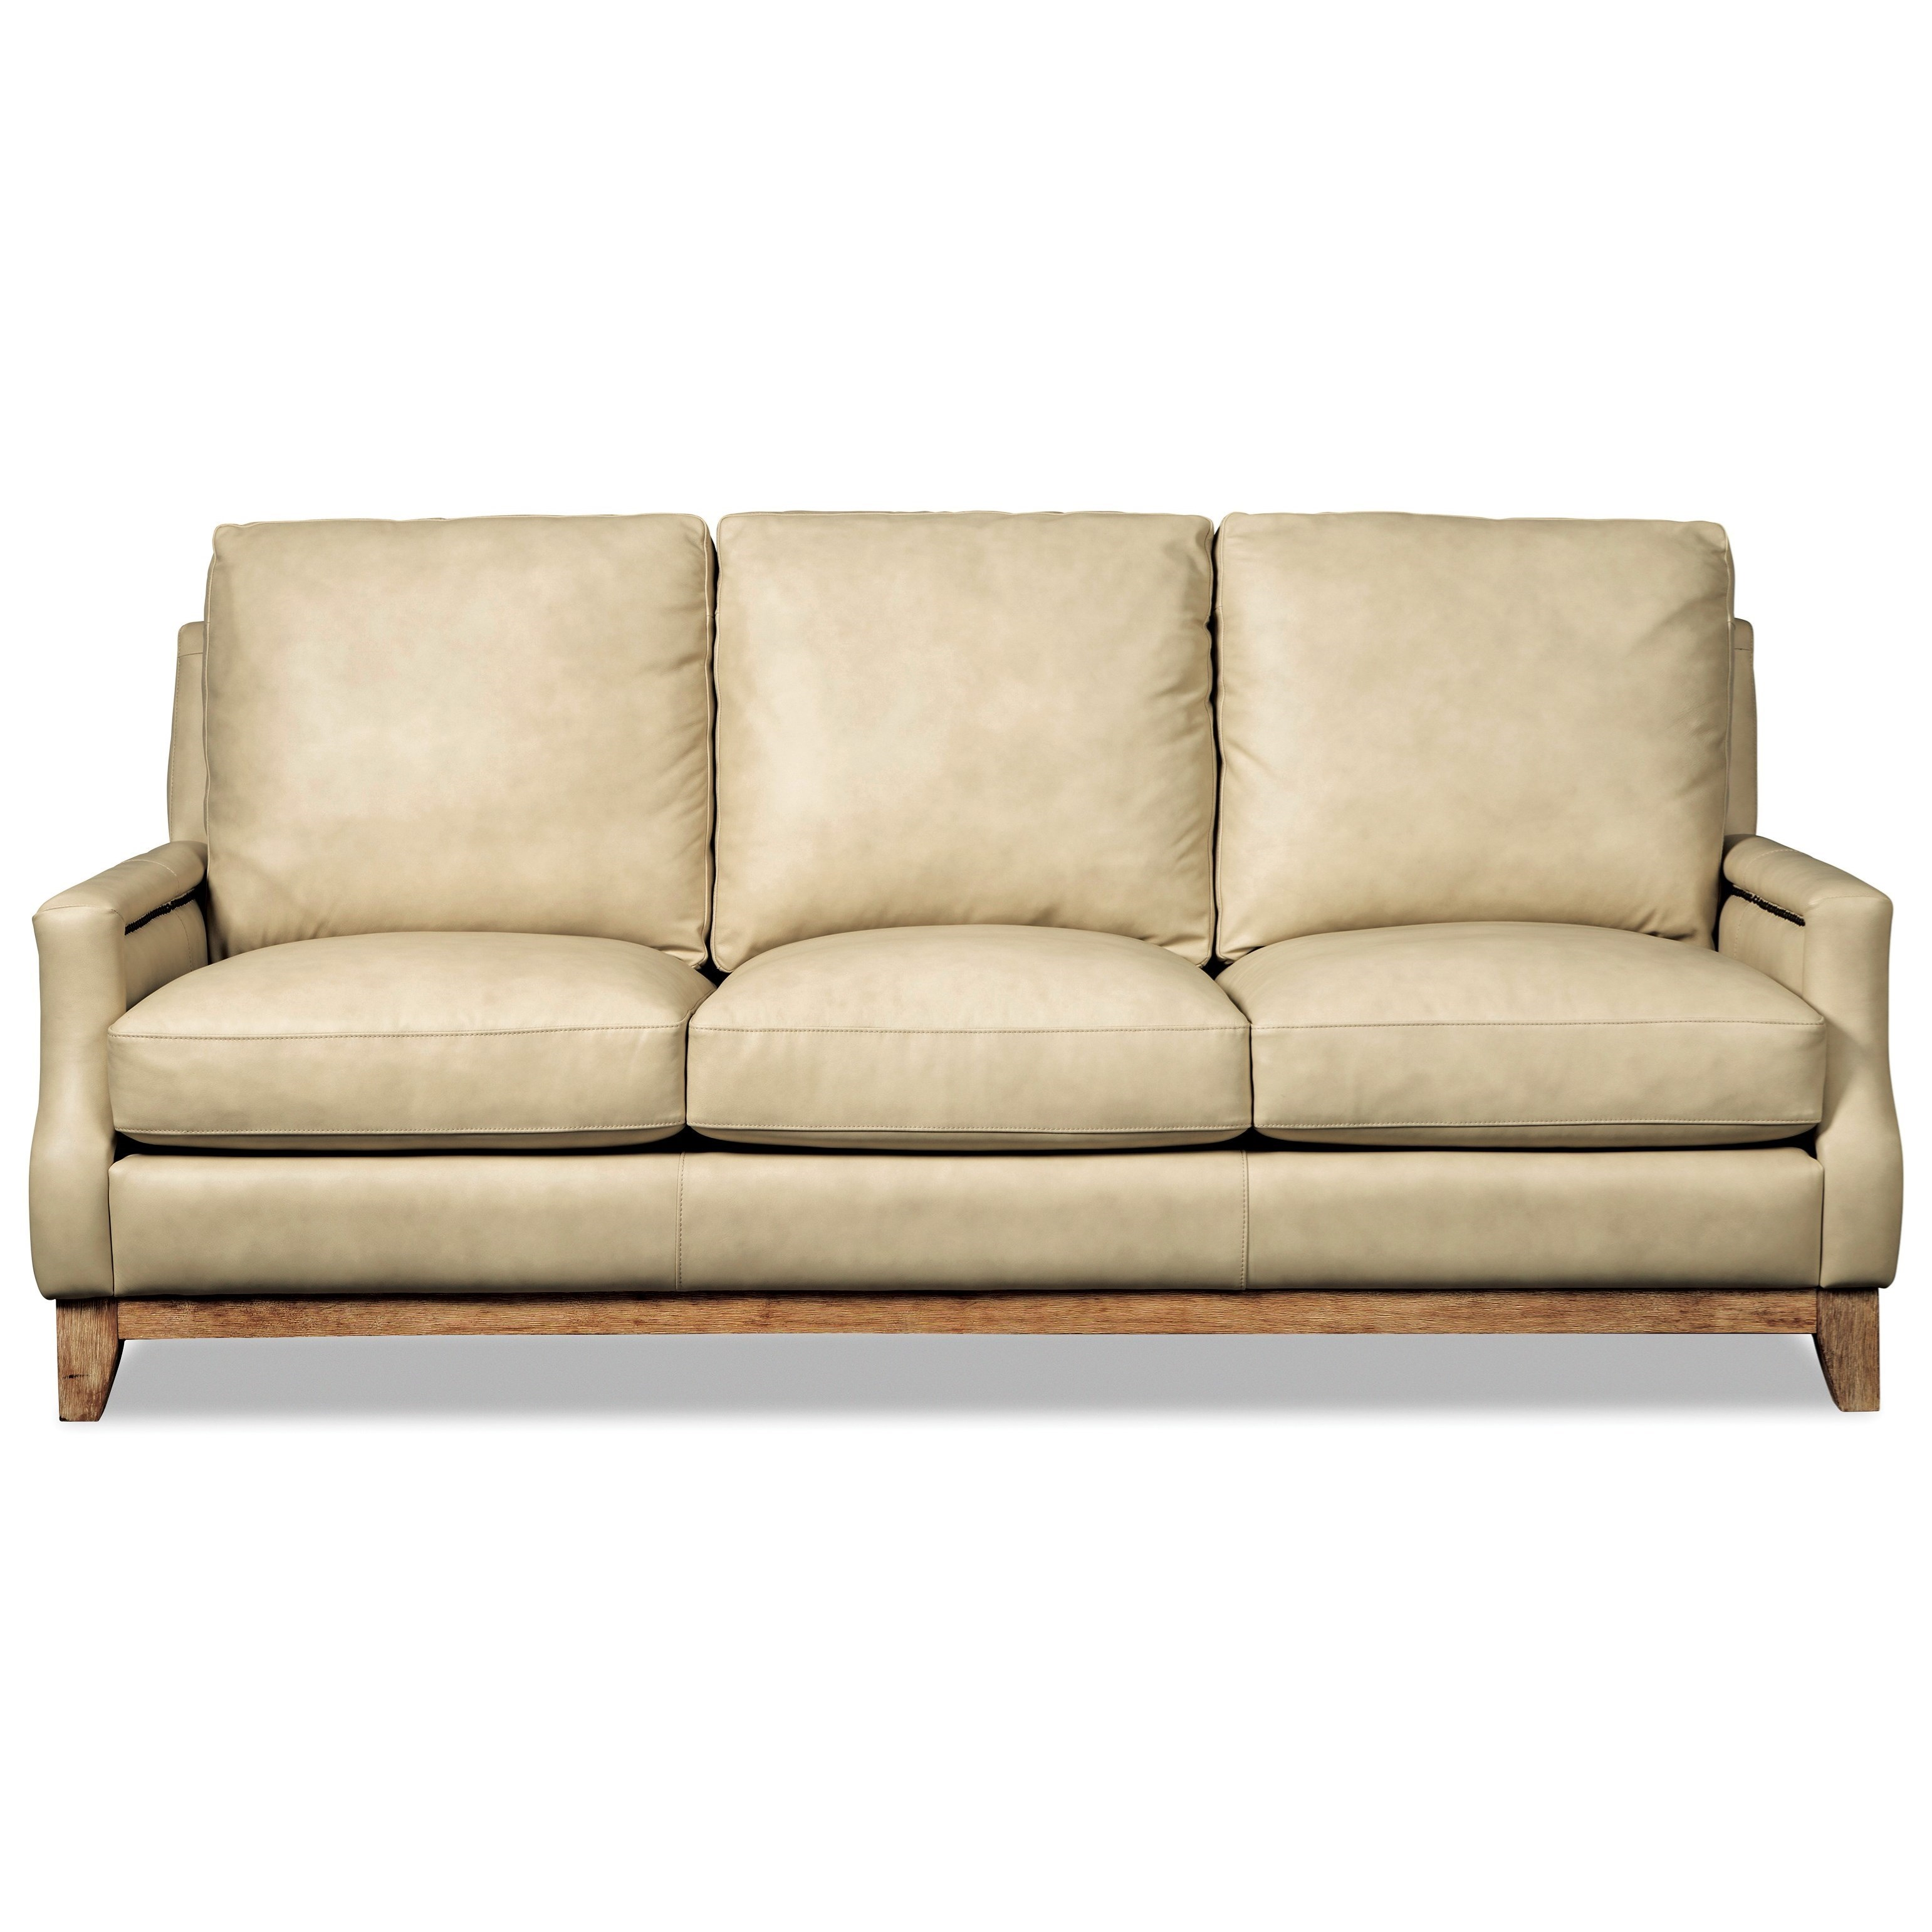 Hickorycraft L172550 Transitional Nailhead-Studded Sofa